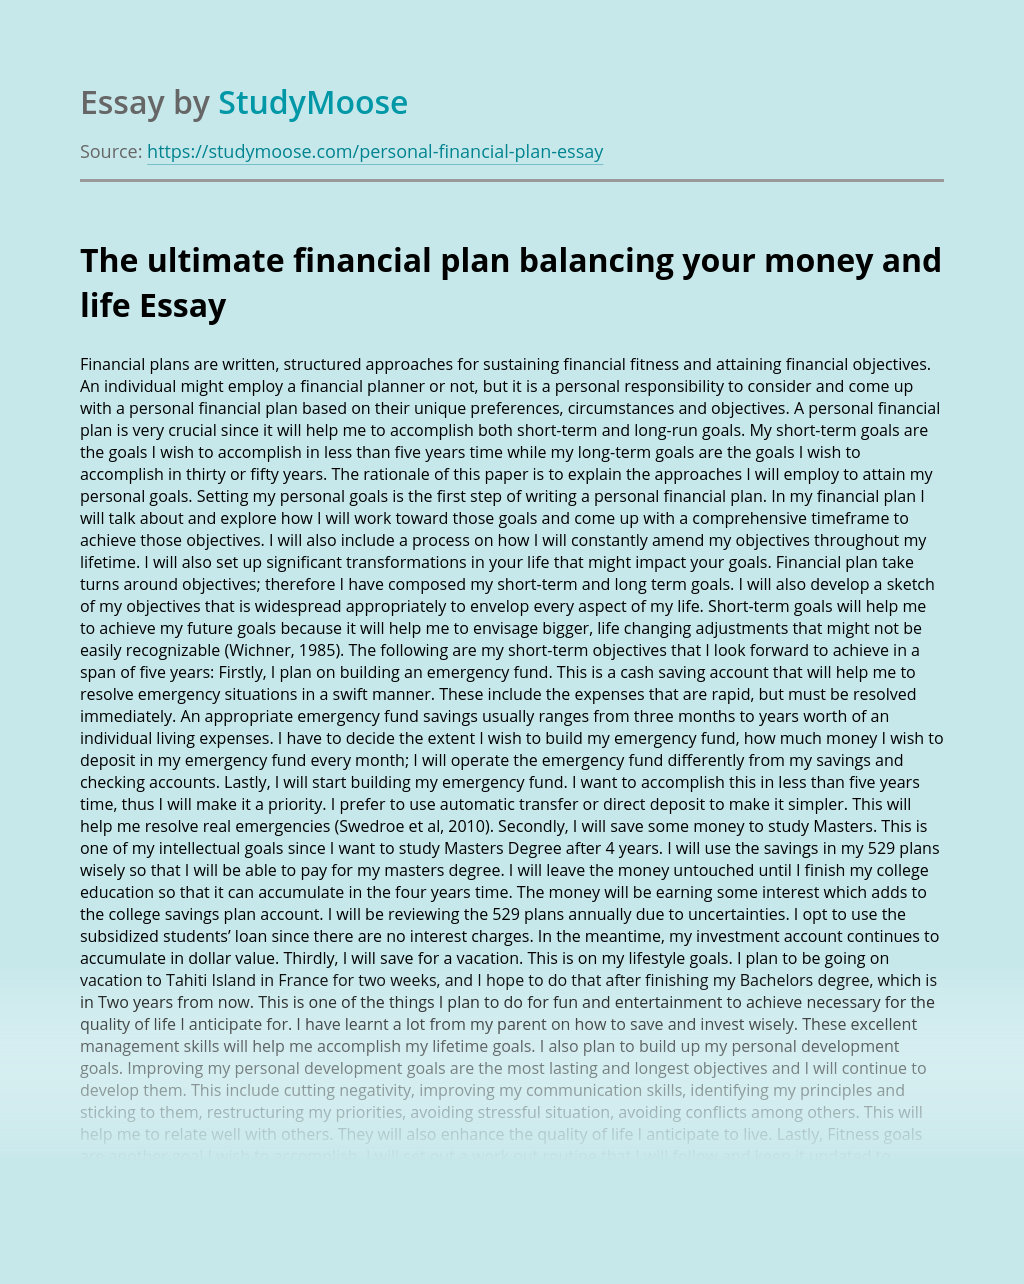 The ultimate financial plan balancing your money and life